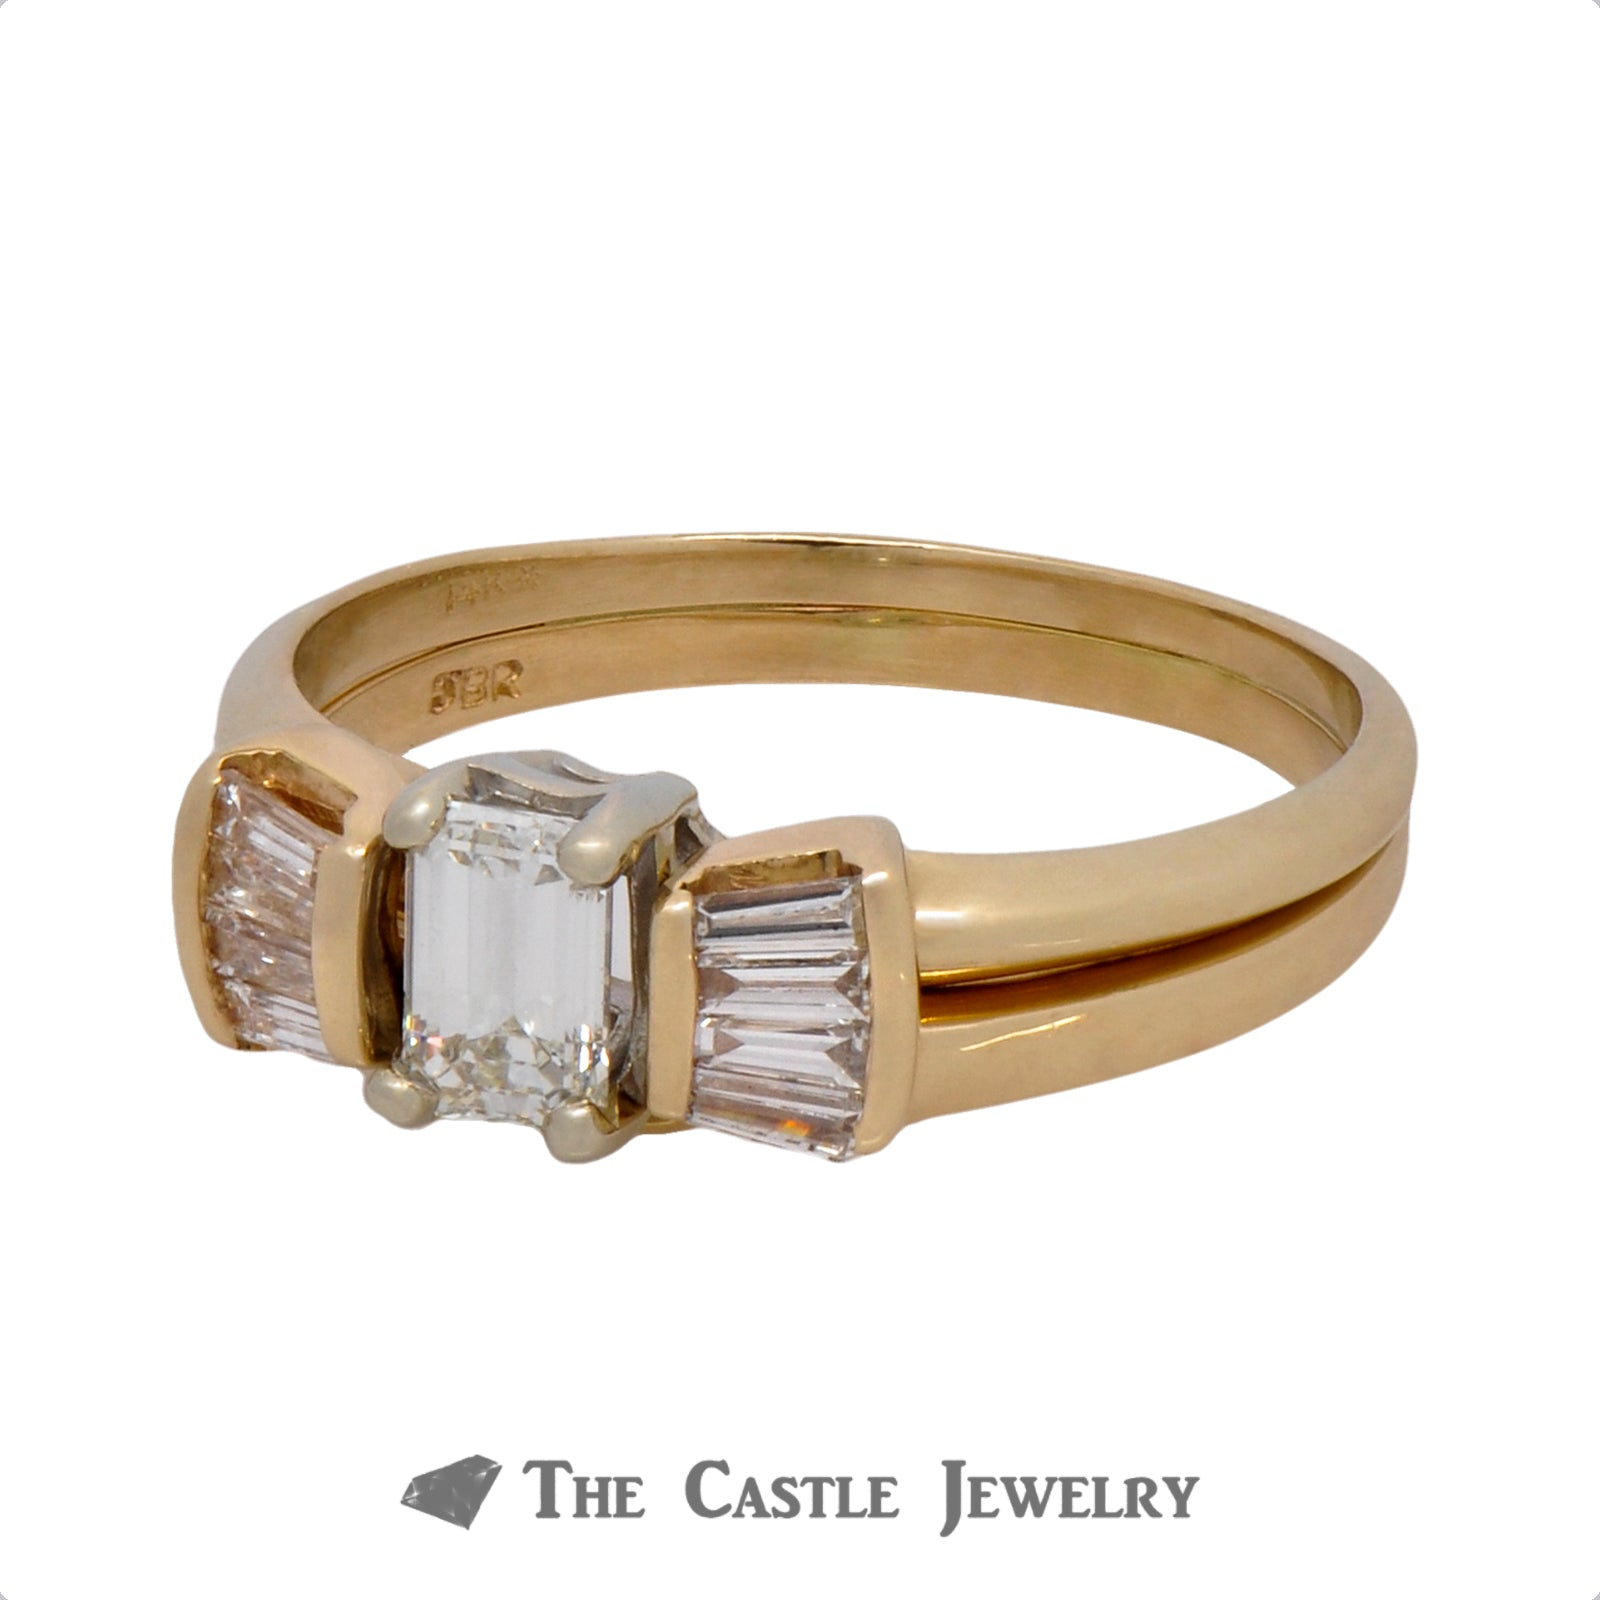 Emerald Cut Bridal Set with Baguette Accents Crafted in 14k Yellow Gold-2